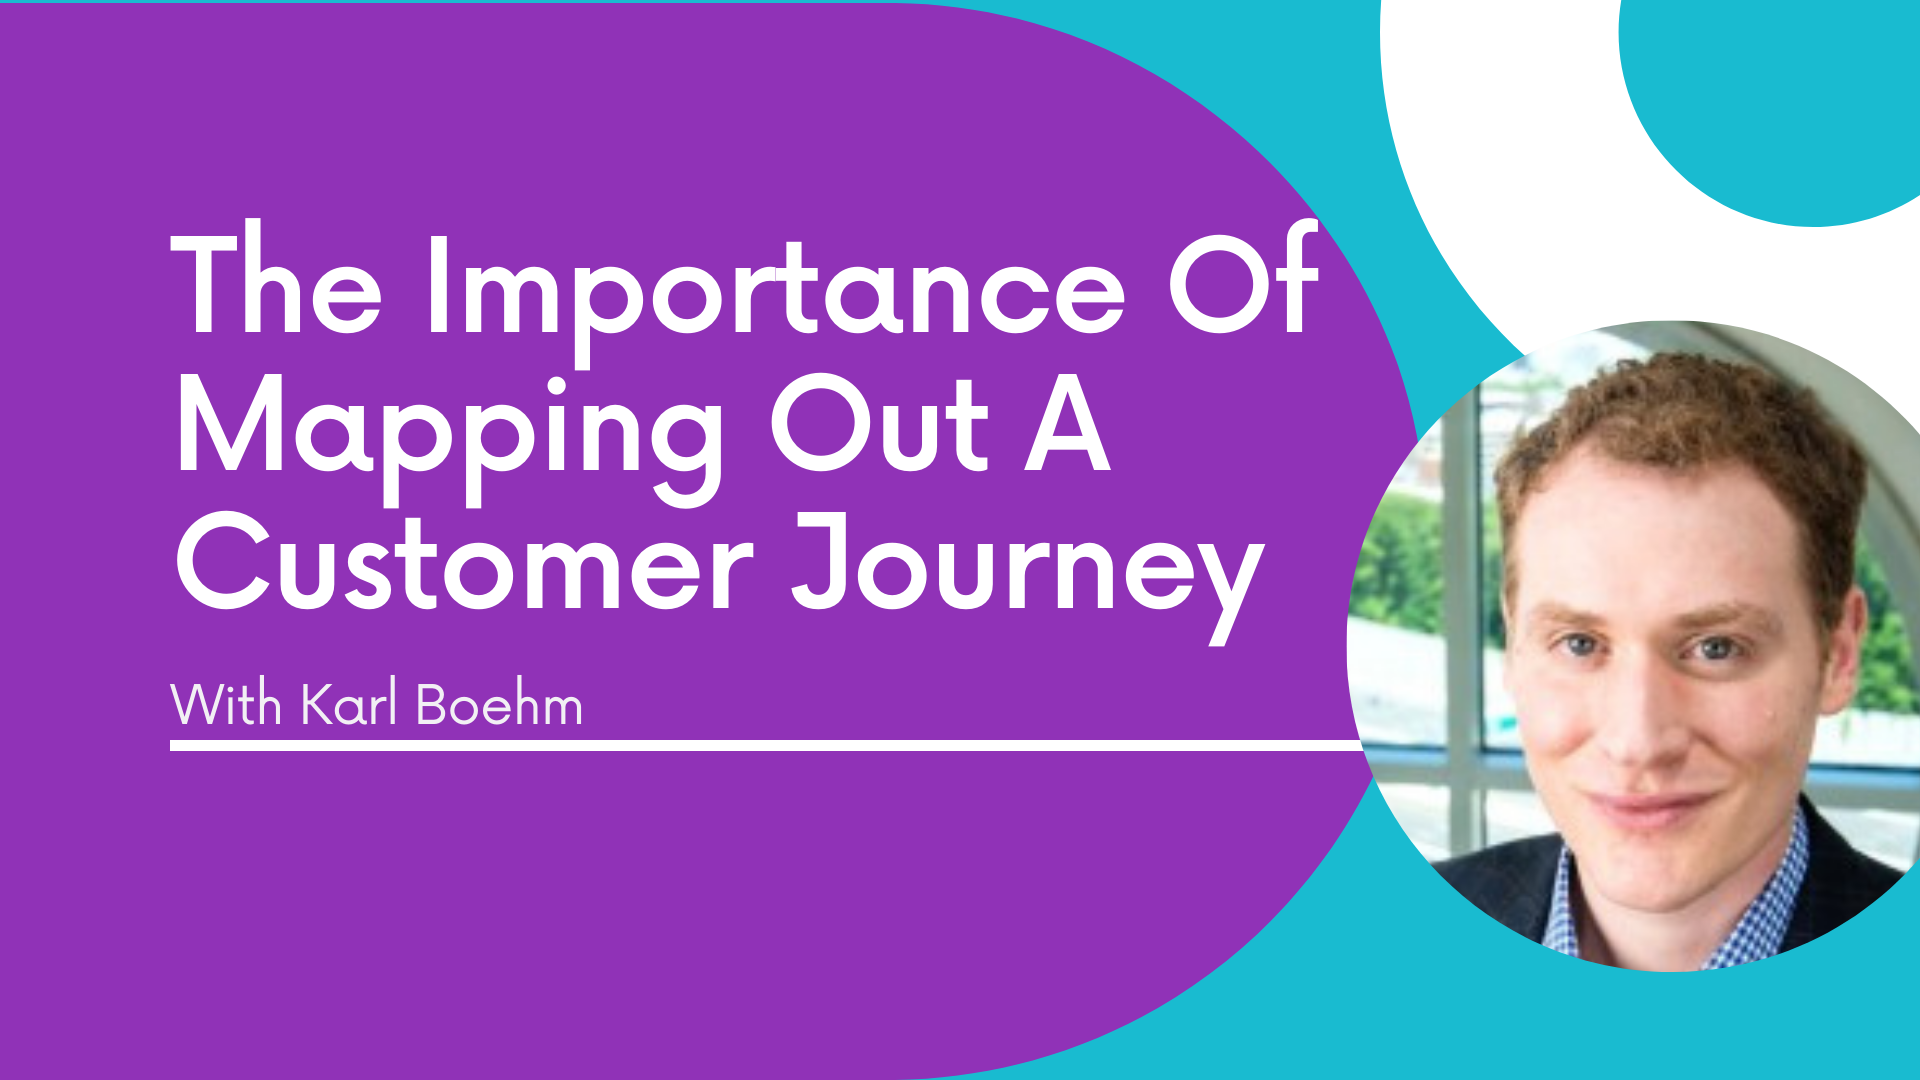 The Importance of Mapping Out A Customer Journey